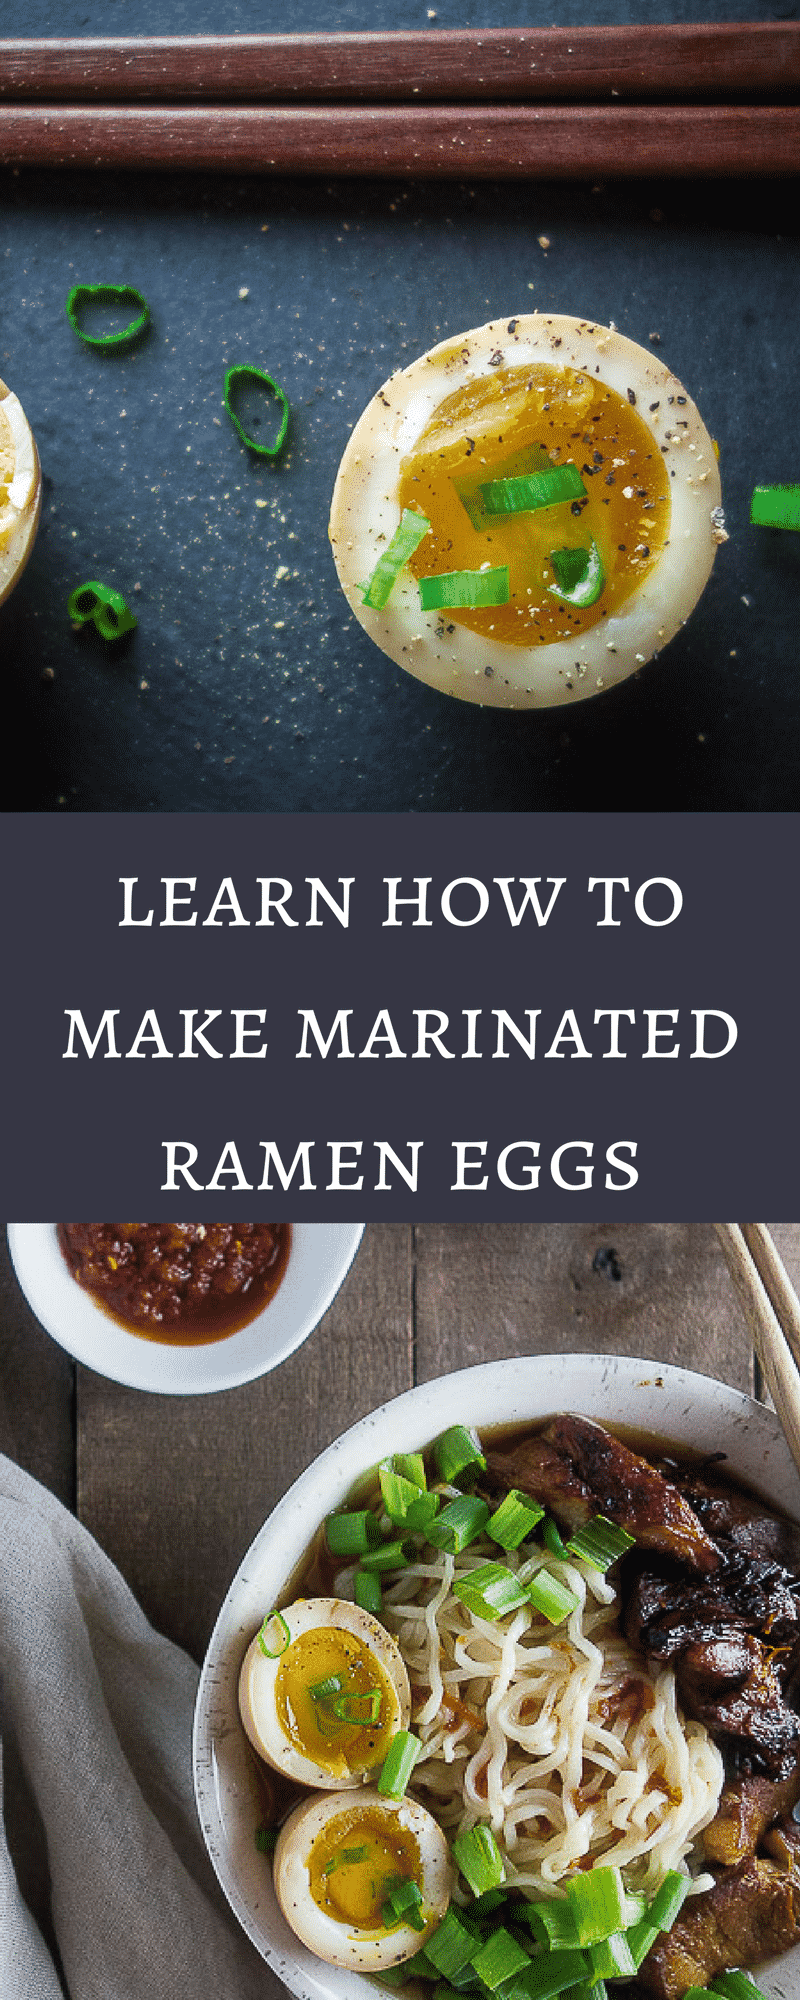 Learn how to make marinated ramen eggs with that gooey yolky center and delicious umami flavor. Perfect for that bowl of ramen, or just as a snack!ramen egg recipe | marinated soy sauce eggs | how to make ramen eggs | how to soft boil eggs | easy ramen eggs | japanese ramen eggs | japanese soy sauce eggs | ajitsuke tamago | healthy eggs | shoyu tamago